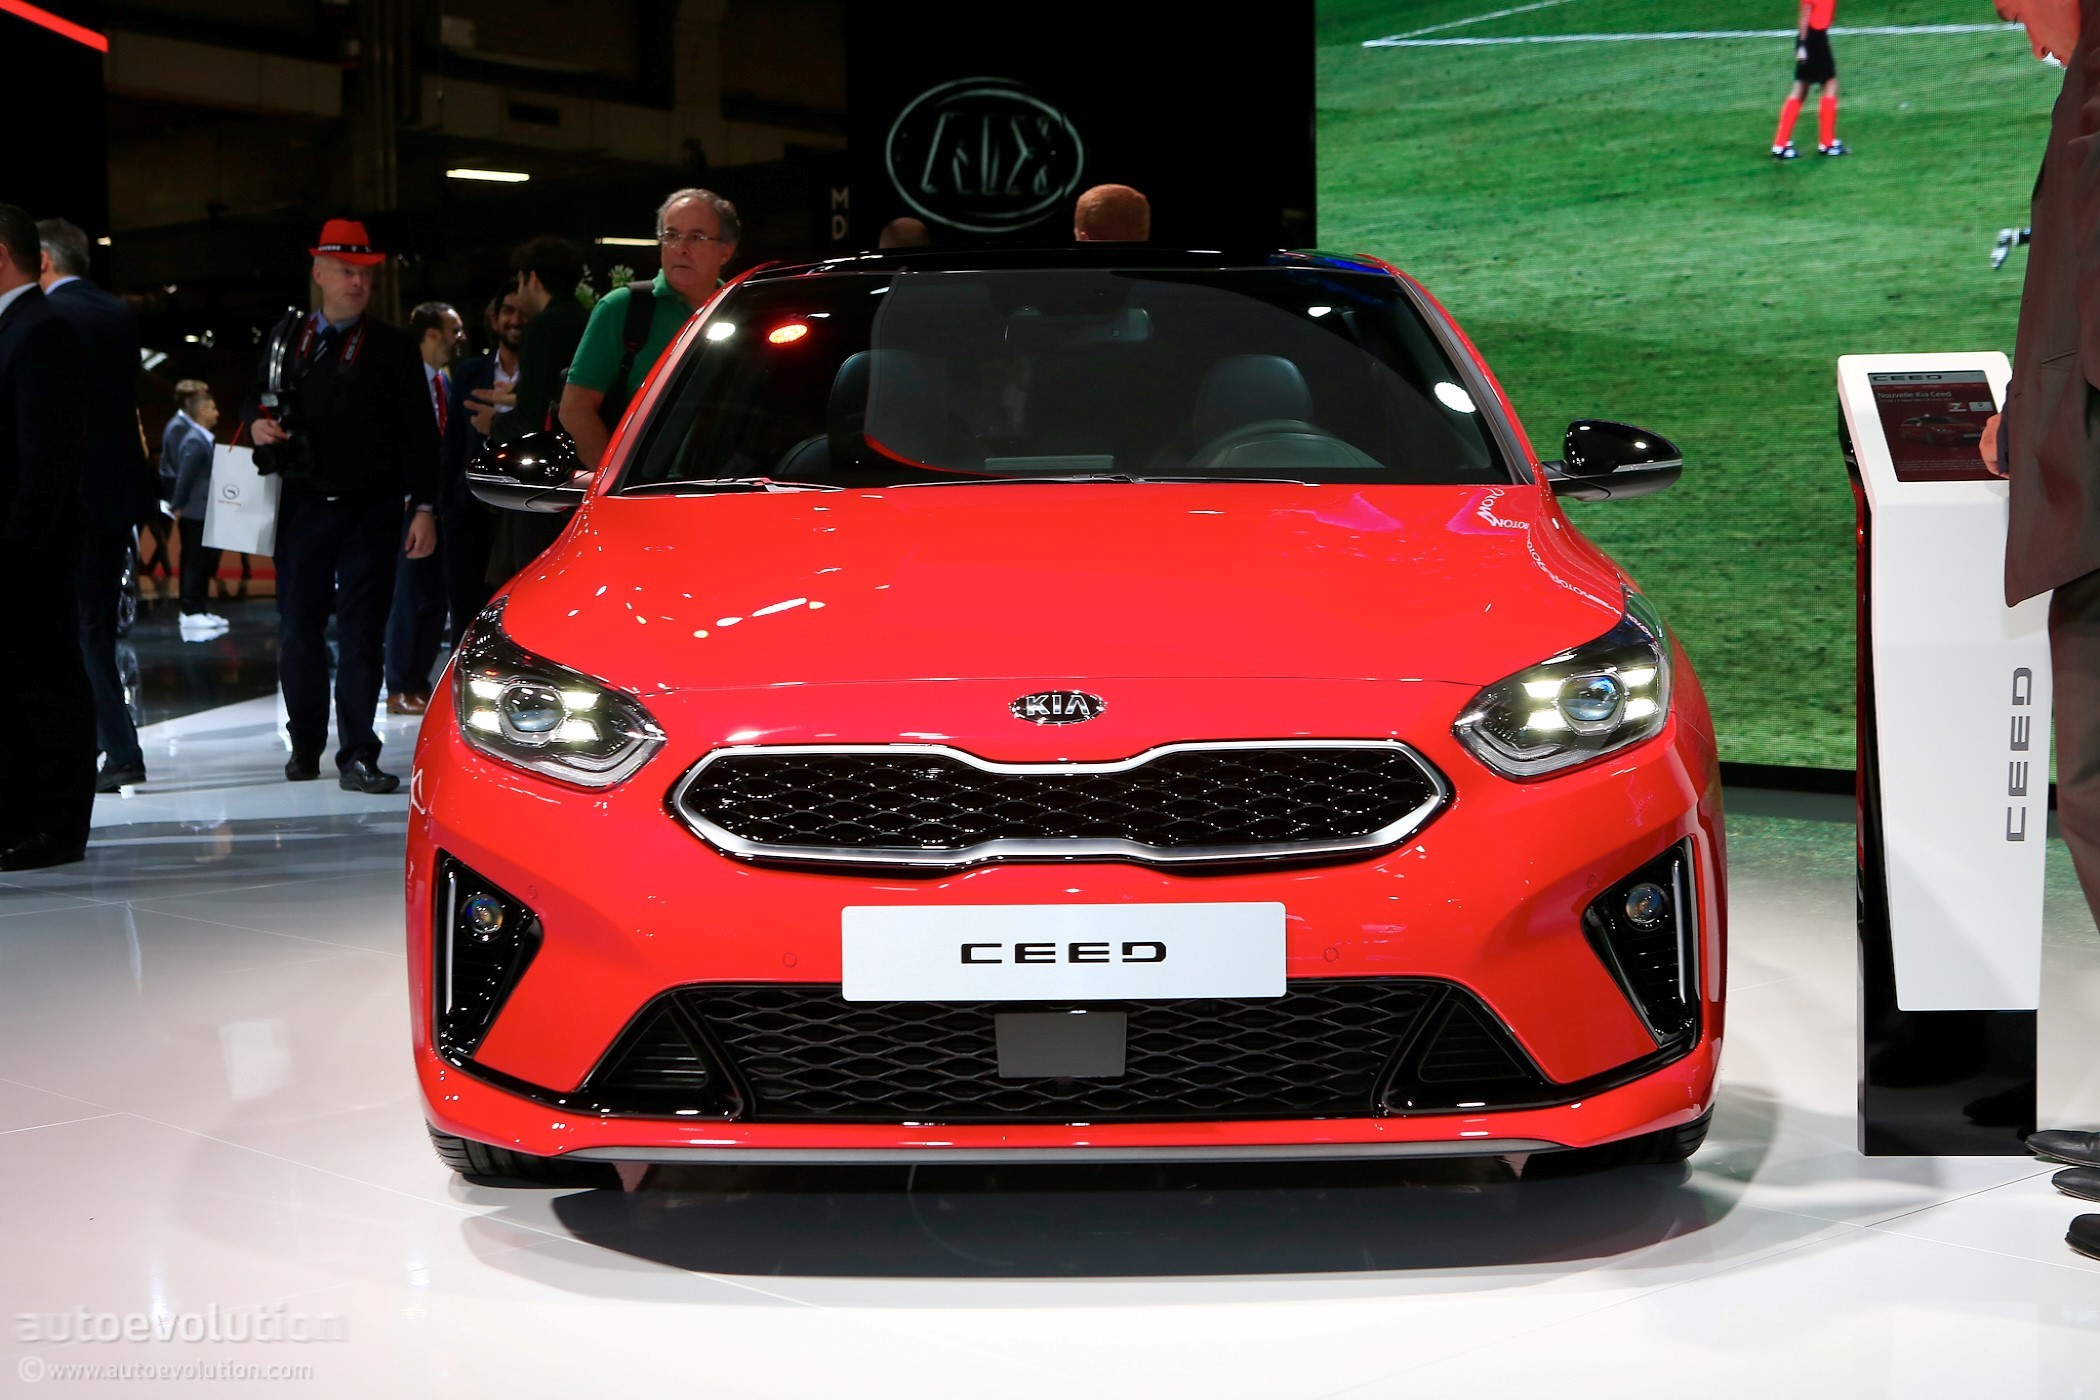 2019 kia ceed gt-line tries too hard to look fast